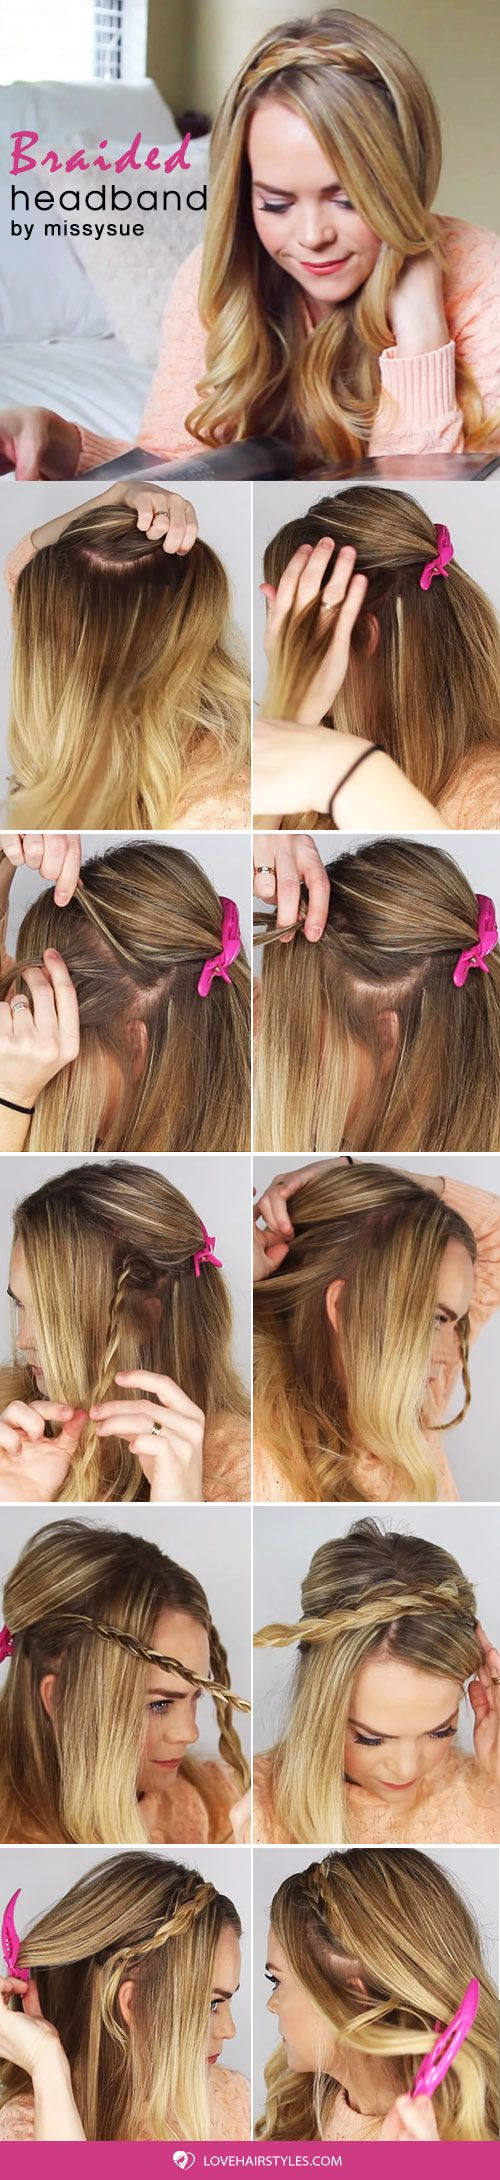 How To Create A Headband Braid #crownbraids #braids